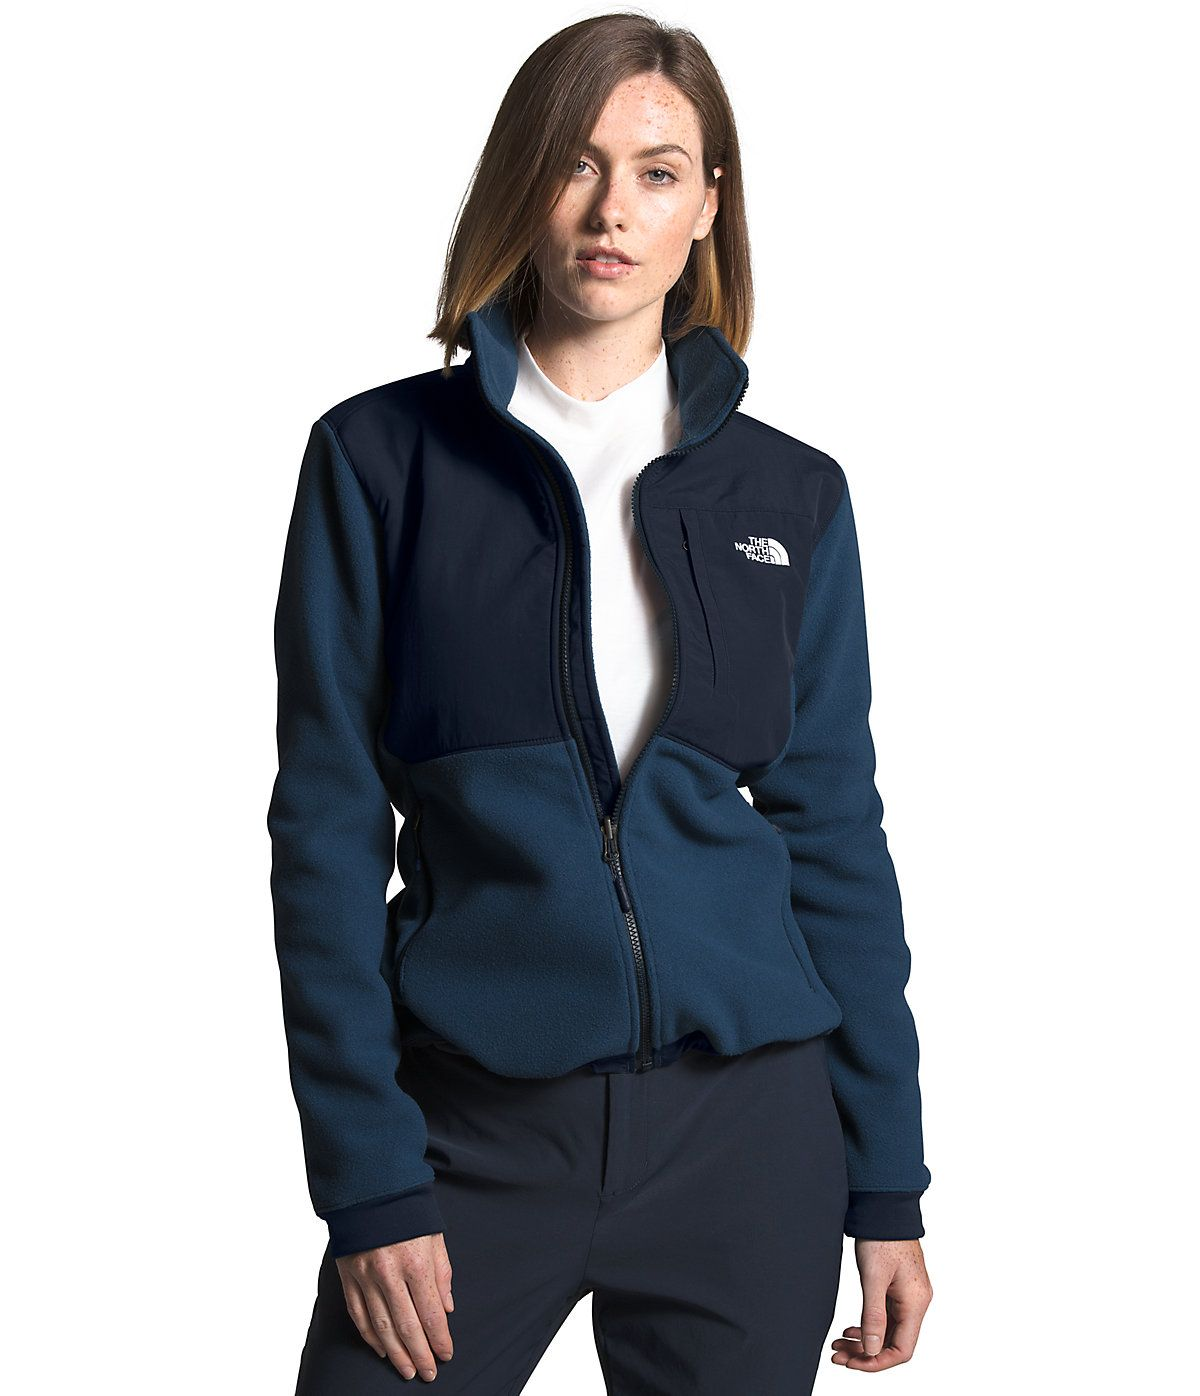 Women S Denali 2 Jacket The North Face The North Face Jackets For Women North Face Women [ 1396 x 1200 Pixel ]